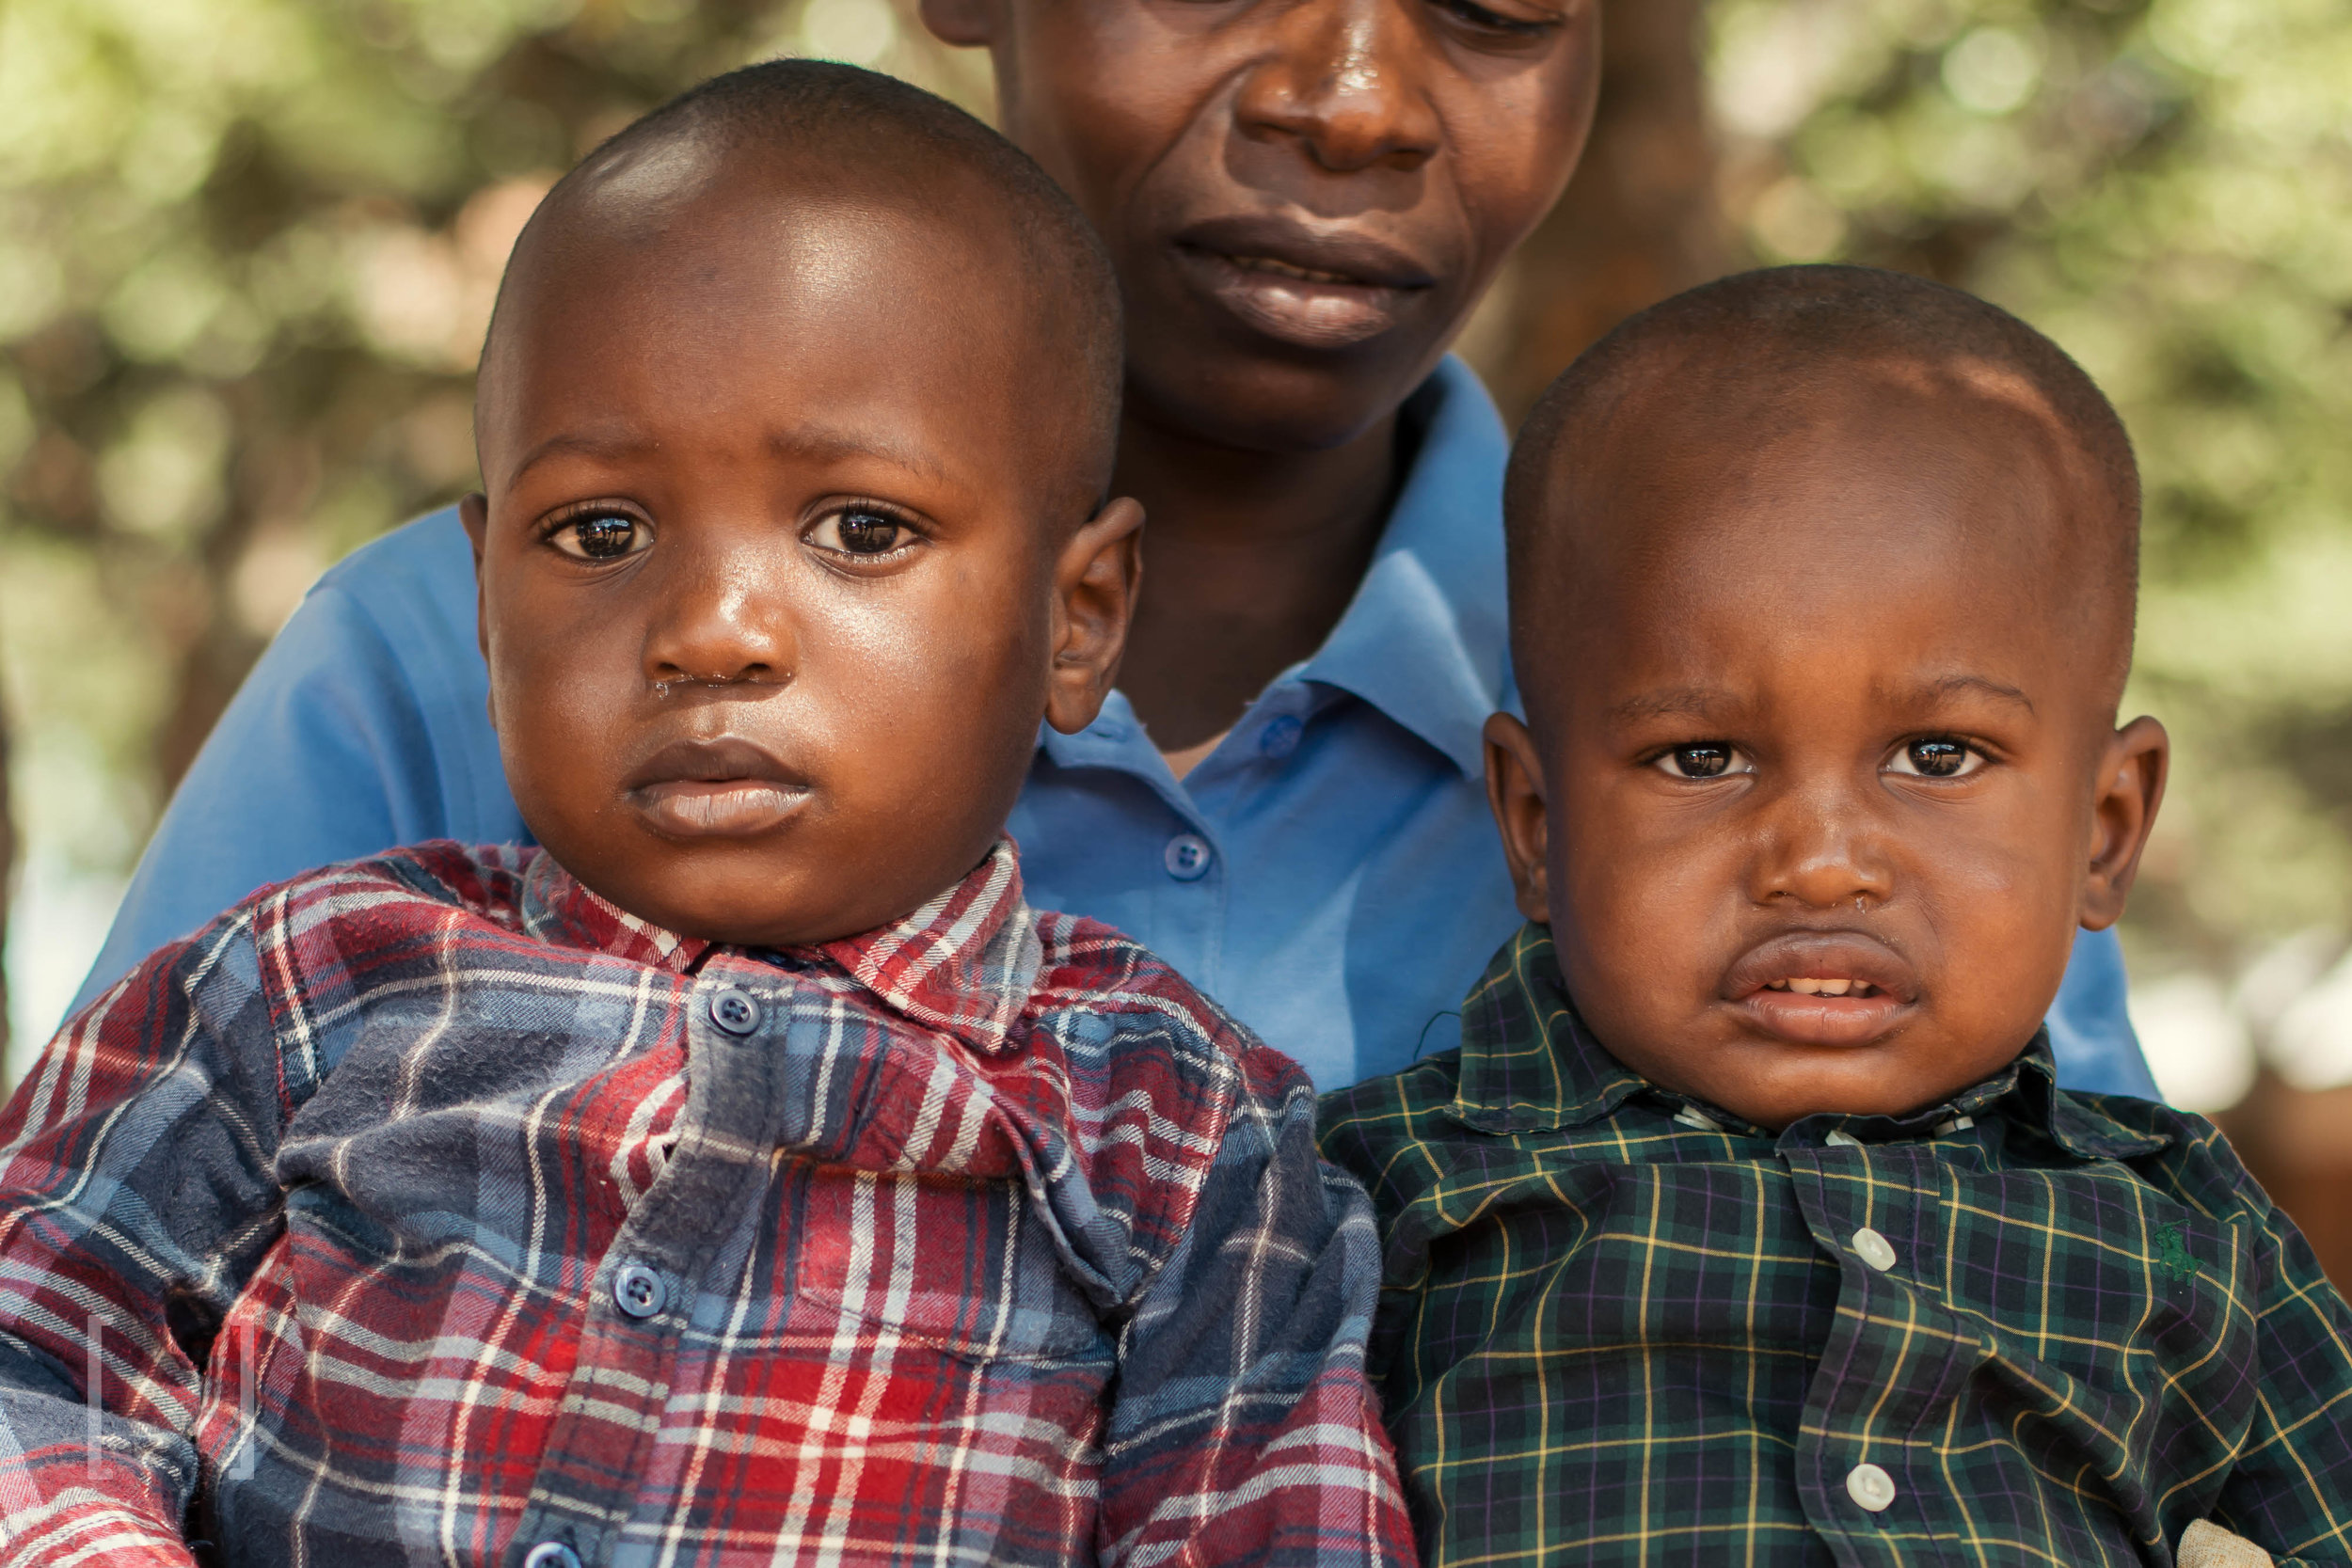 Tatenda and Tawanda - Tatenda and Tawanda are twins, born on March 18, 2016. They lost their mother when they were three weeks old. They are happy babies and are in very good health. Sponsor these brothers toda